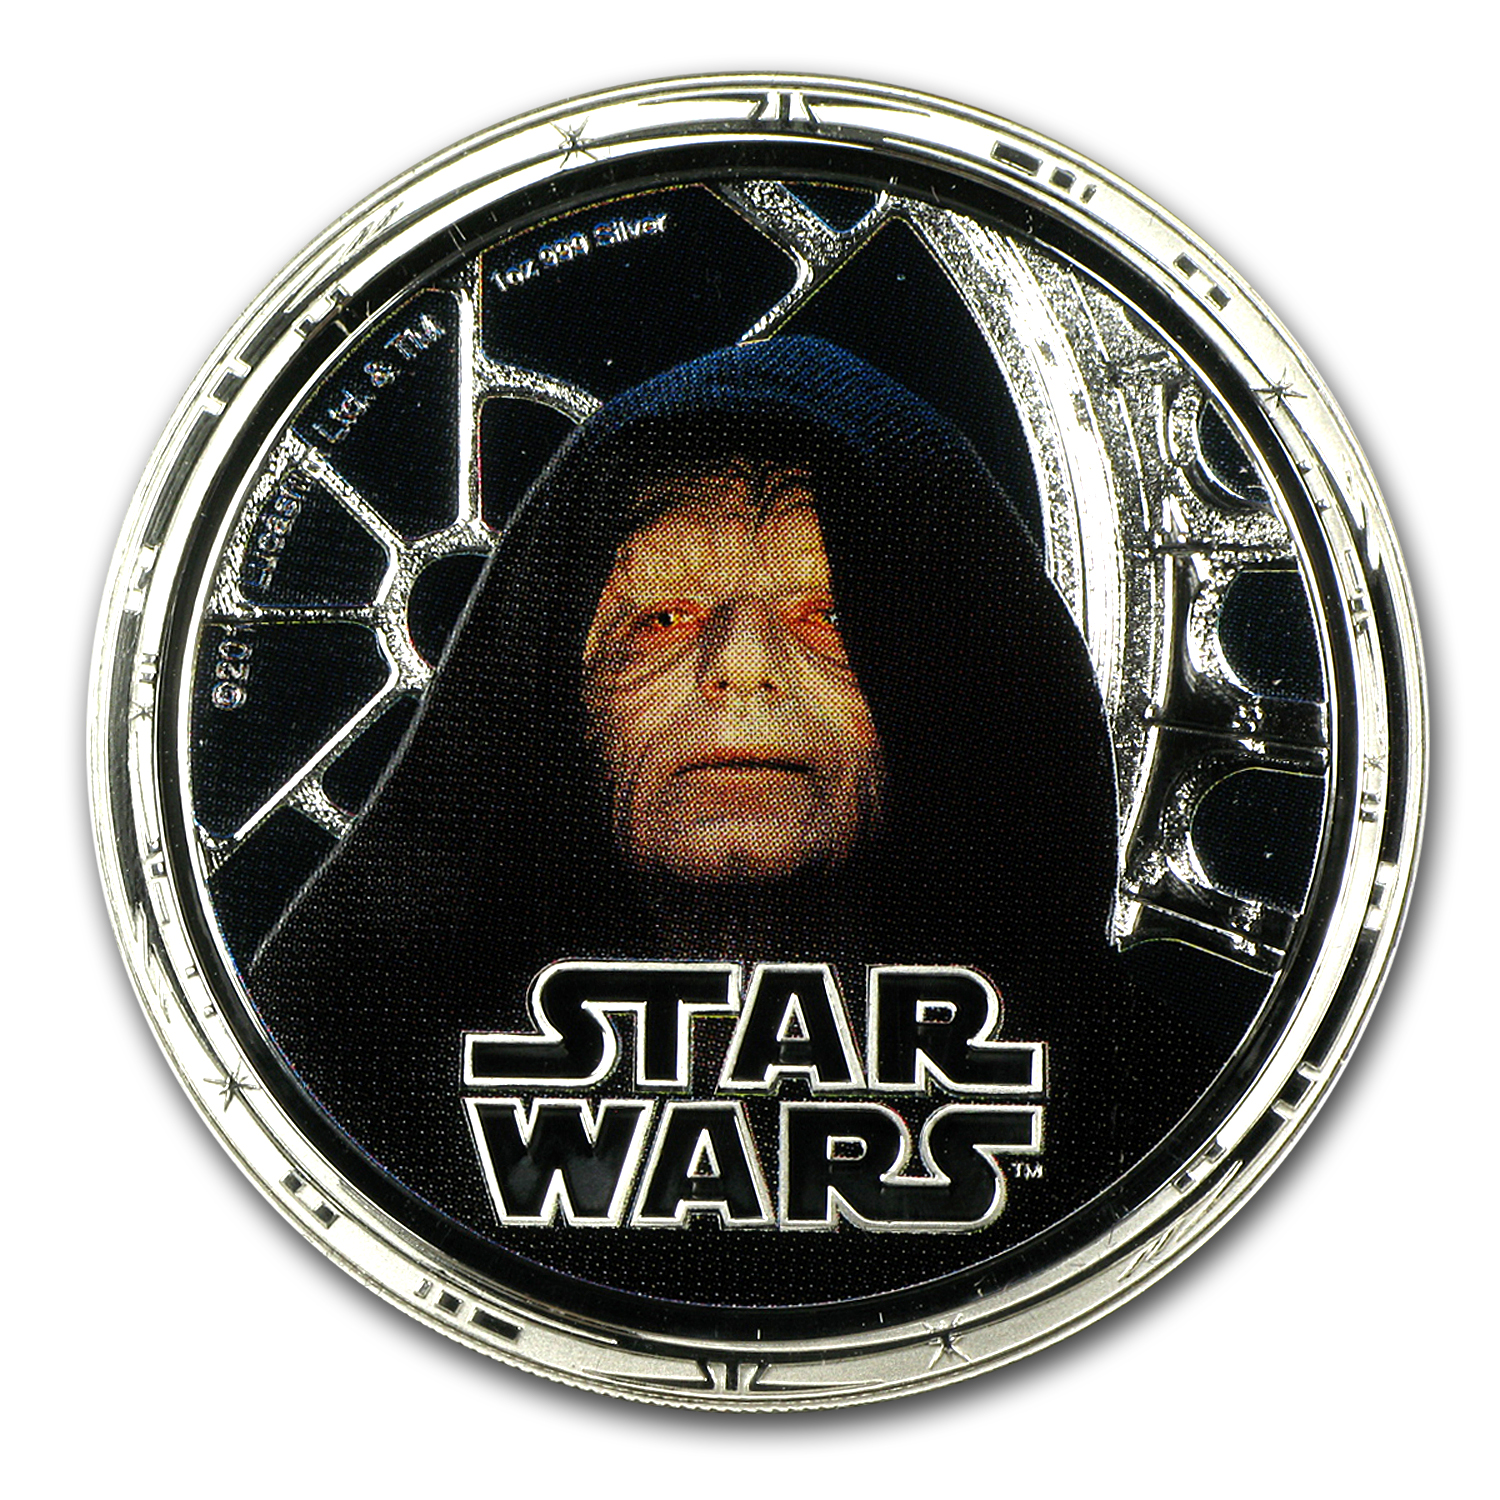 2011 Niue 4-Coin 1 oz Silver $2 Star Wars Proof Set (Dark Side)